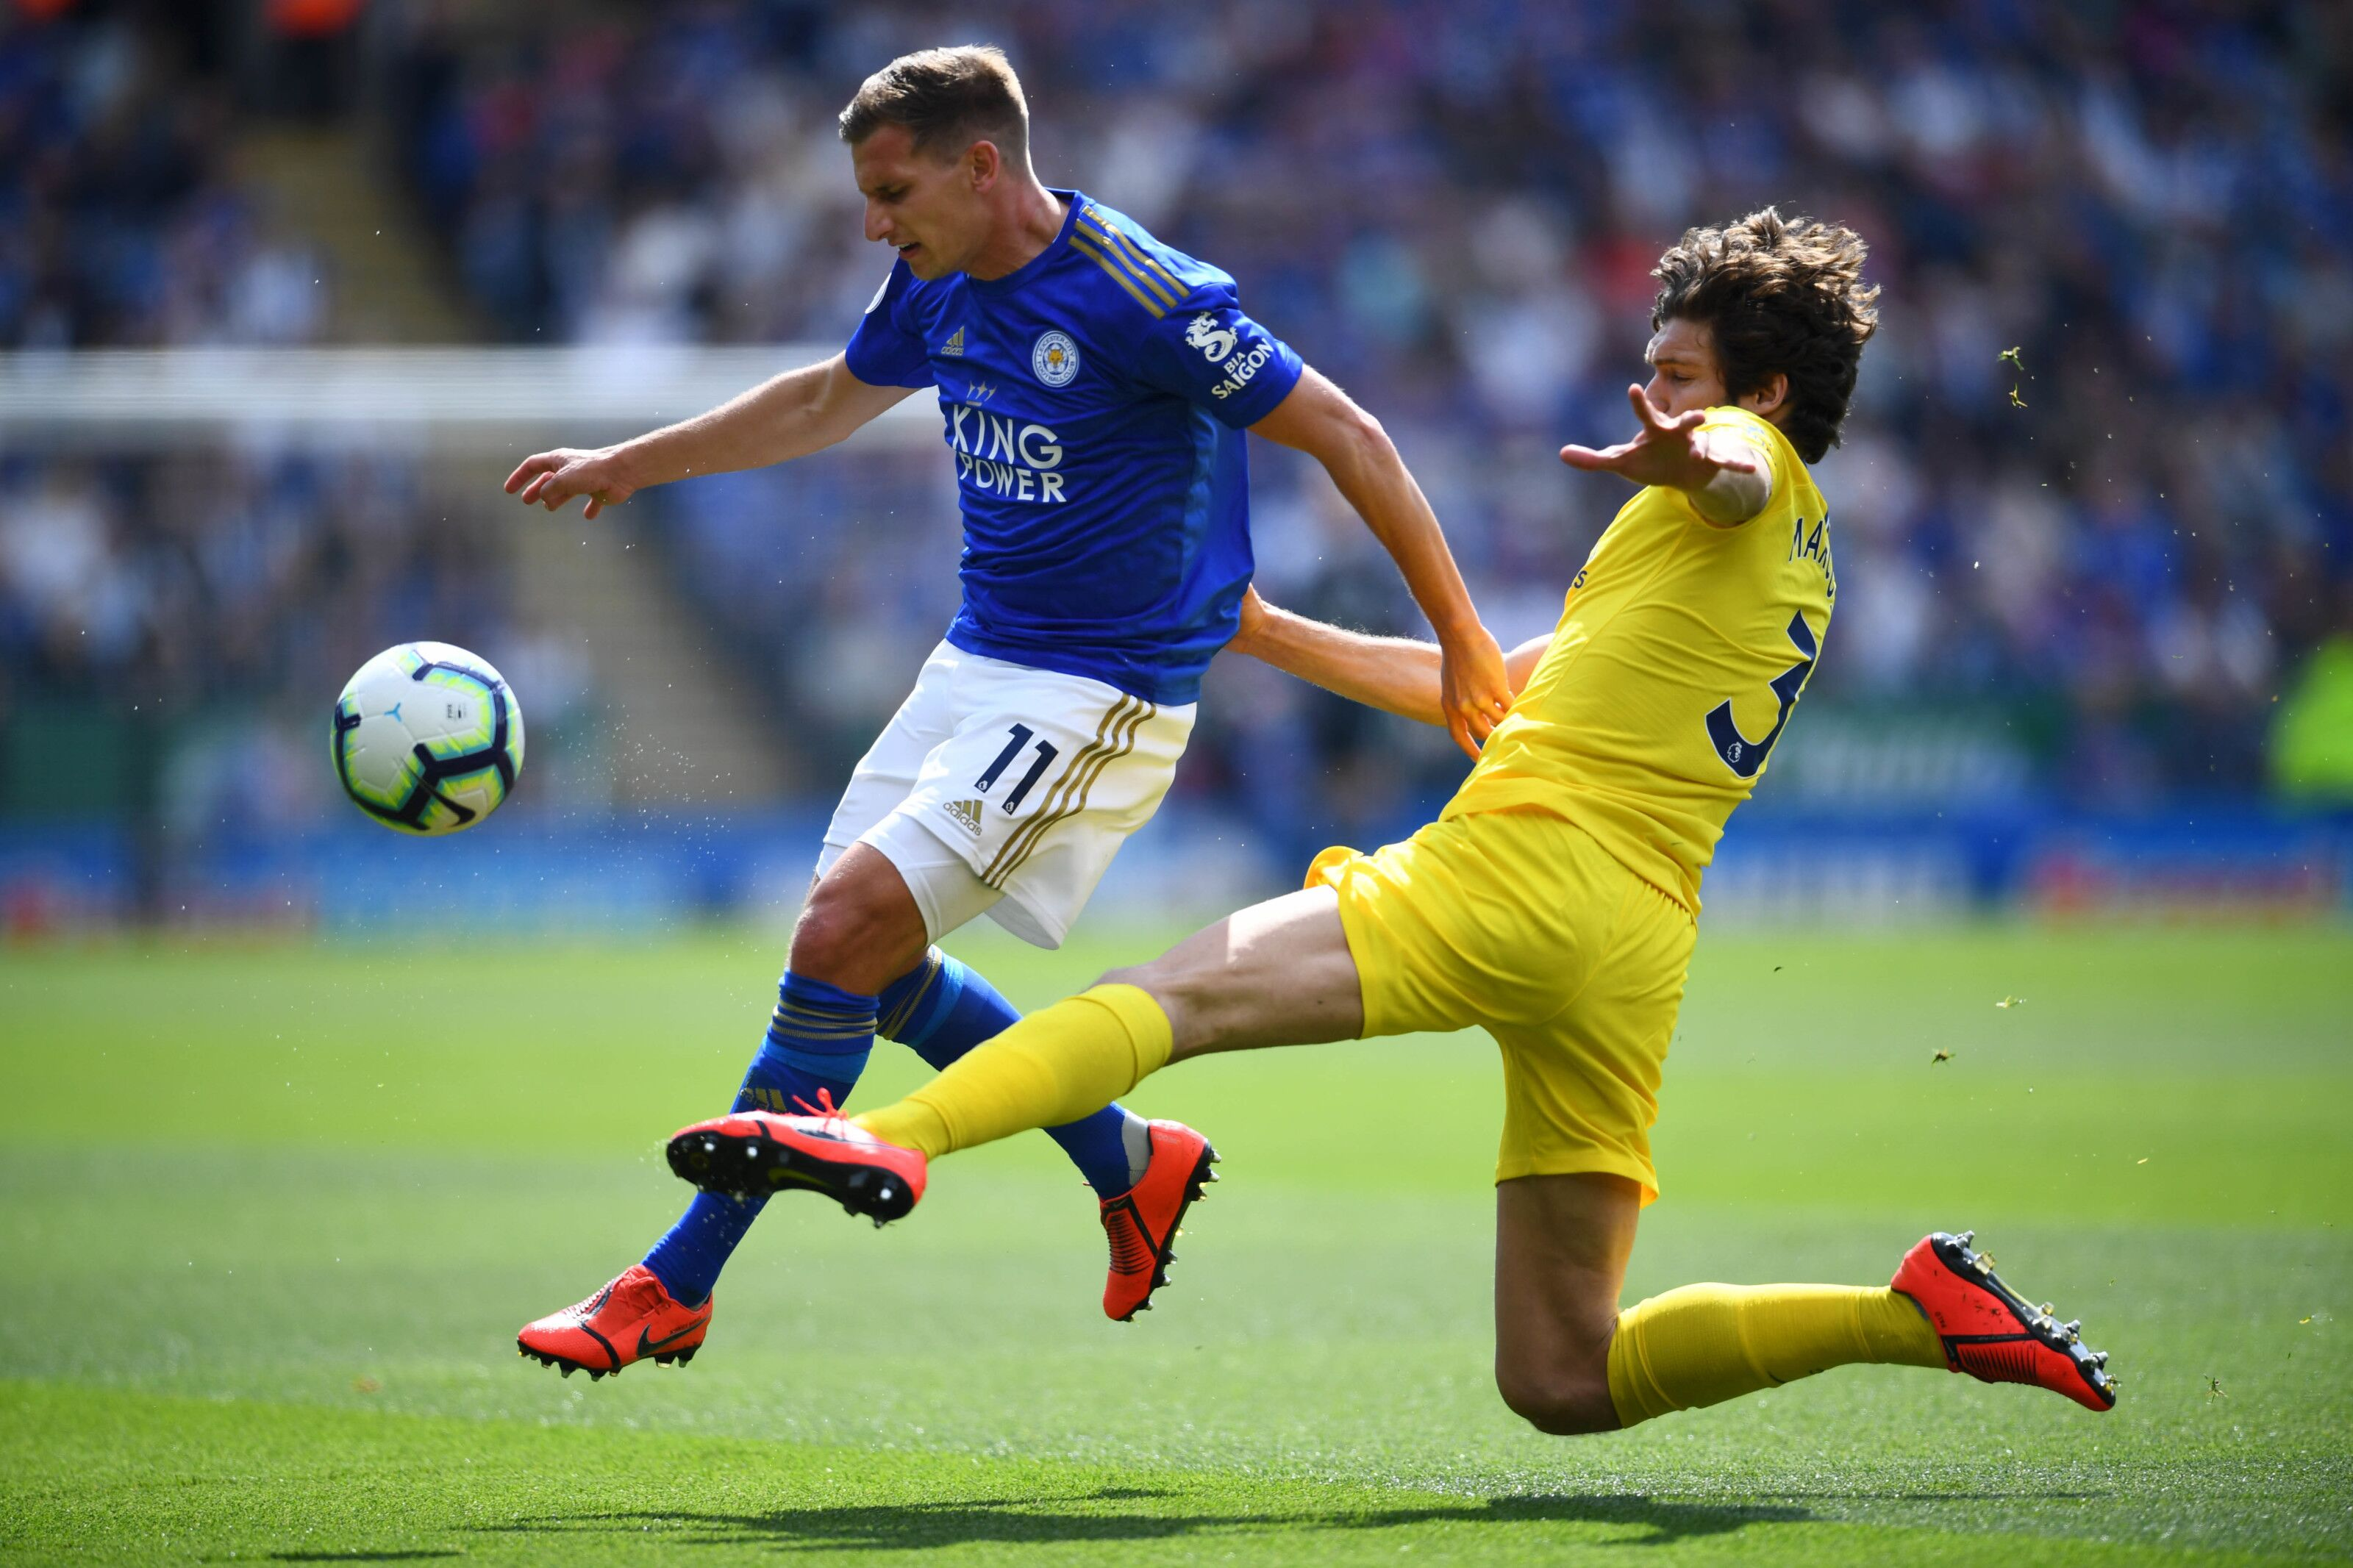 Expect Marc Albrighton to be less involved for Leicester City in 2019/20